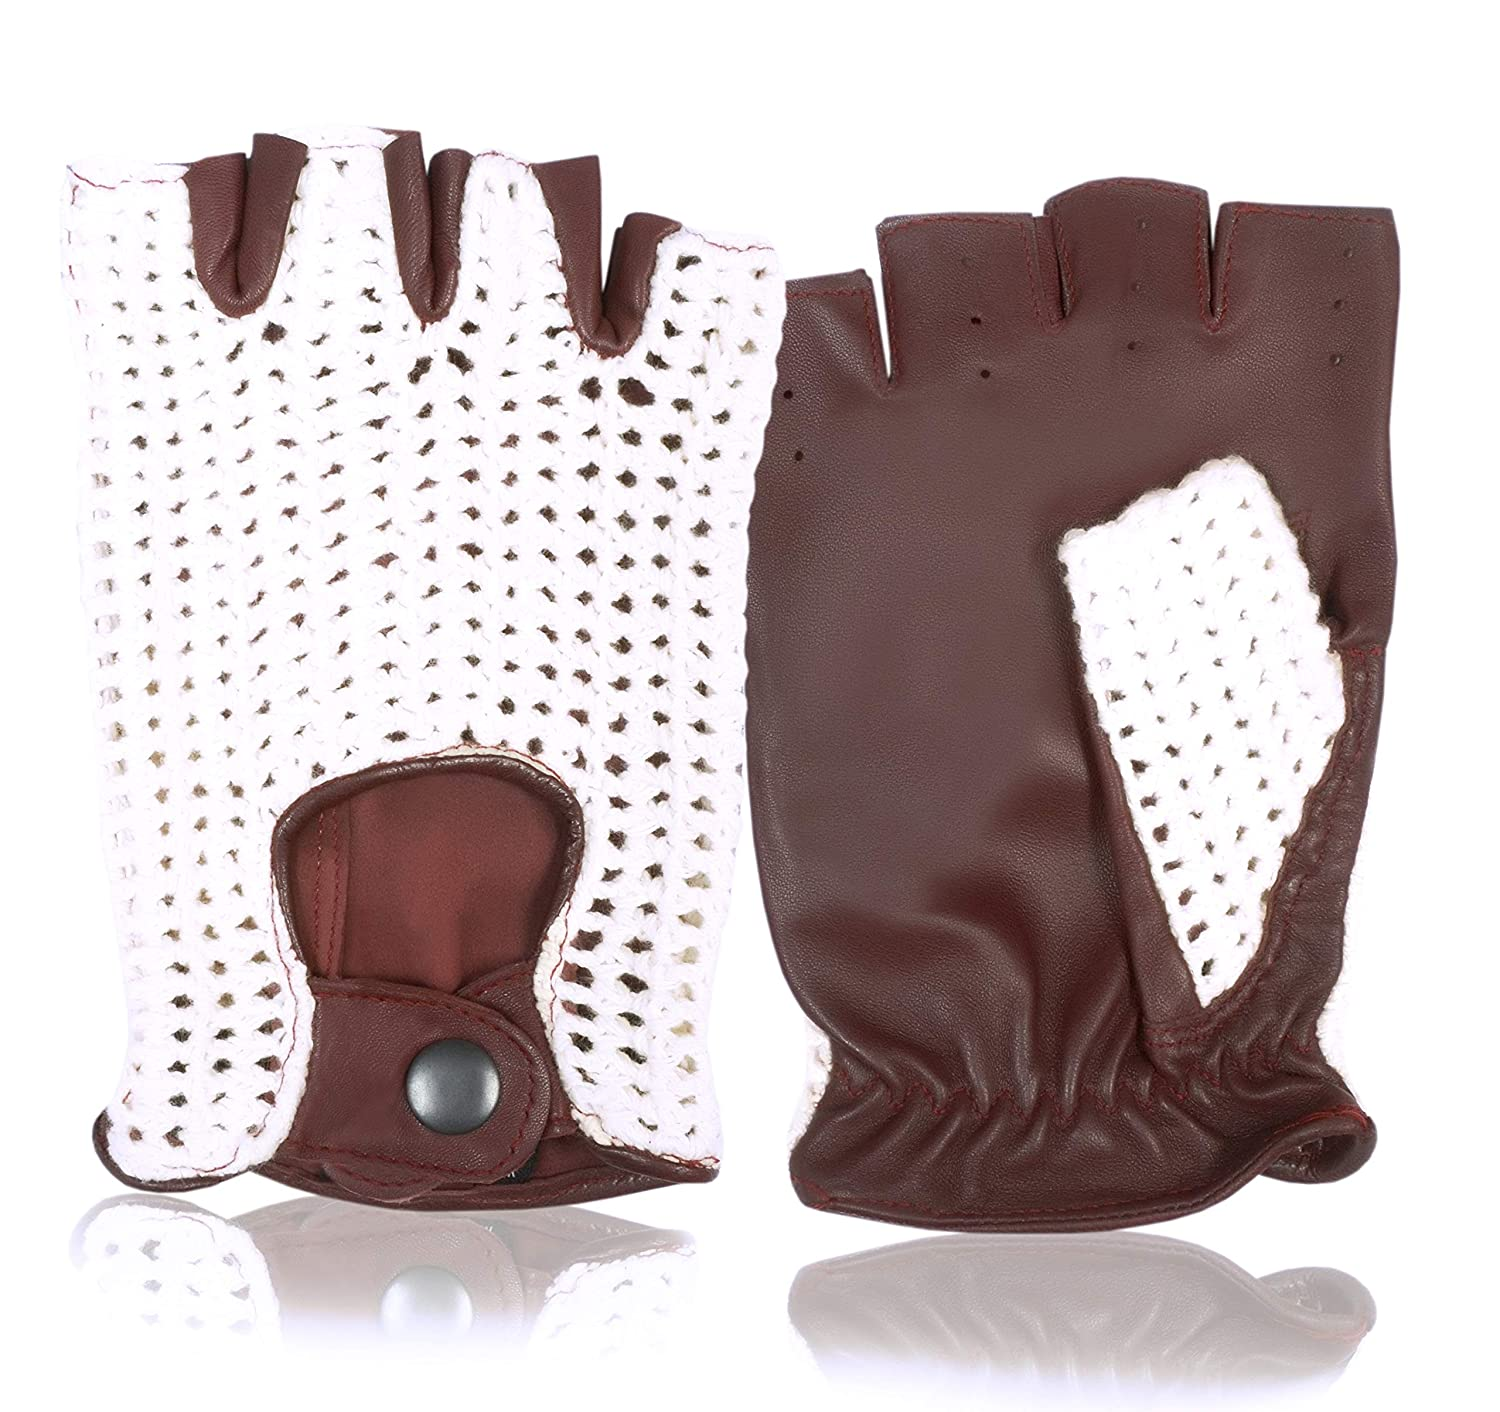 Classic Fingerless English Leather Driving Gloves Crochet String back Unisex Chauffeur Vintage fashion